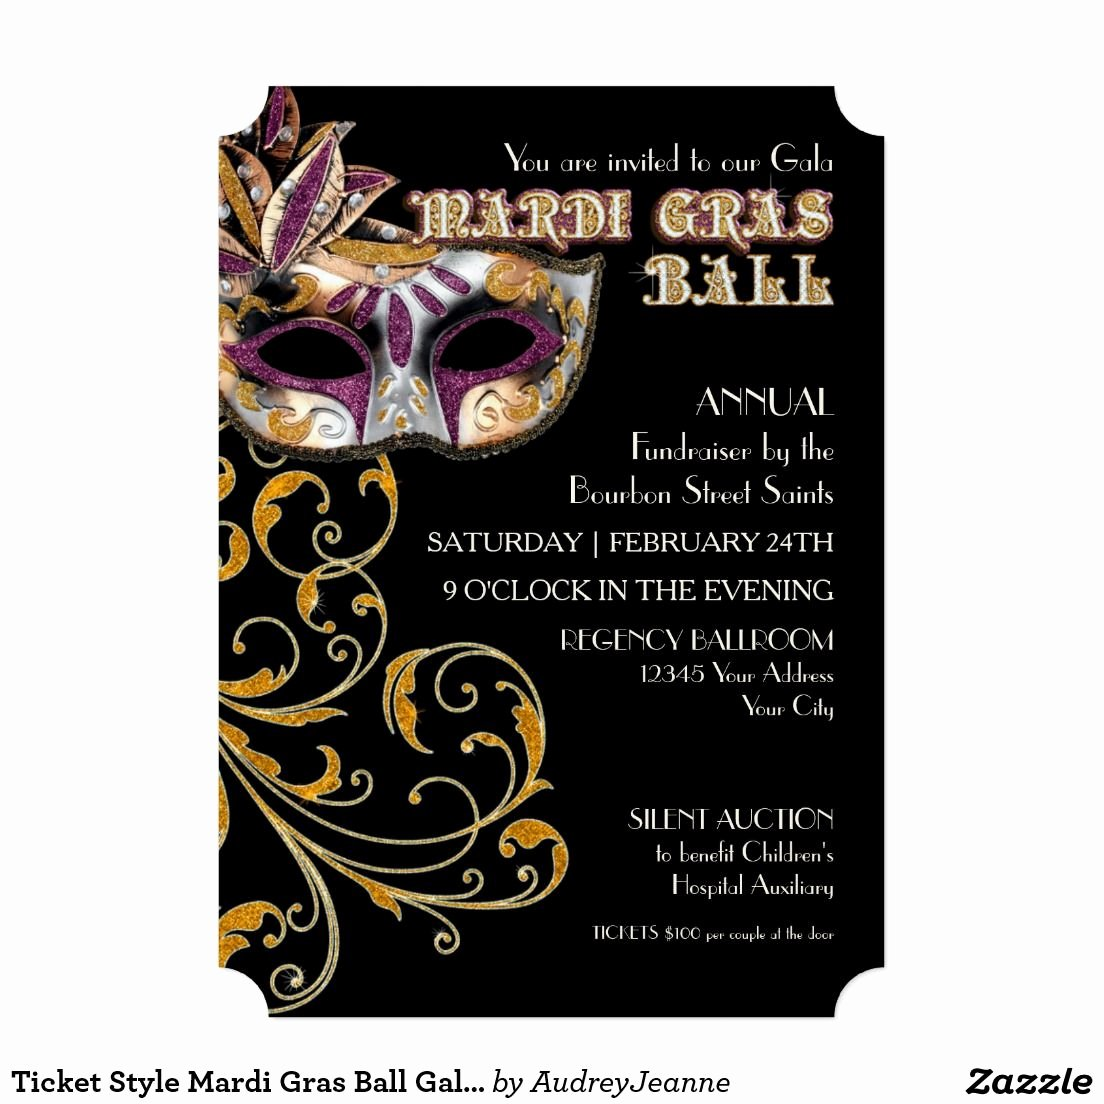 Mardi Gras Invitation Template Free Luxury Ticket Style Mardi Gras Ball Gala Party Fundraiser